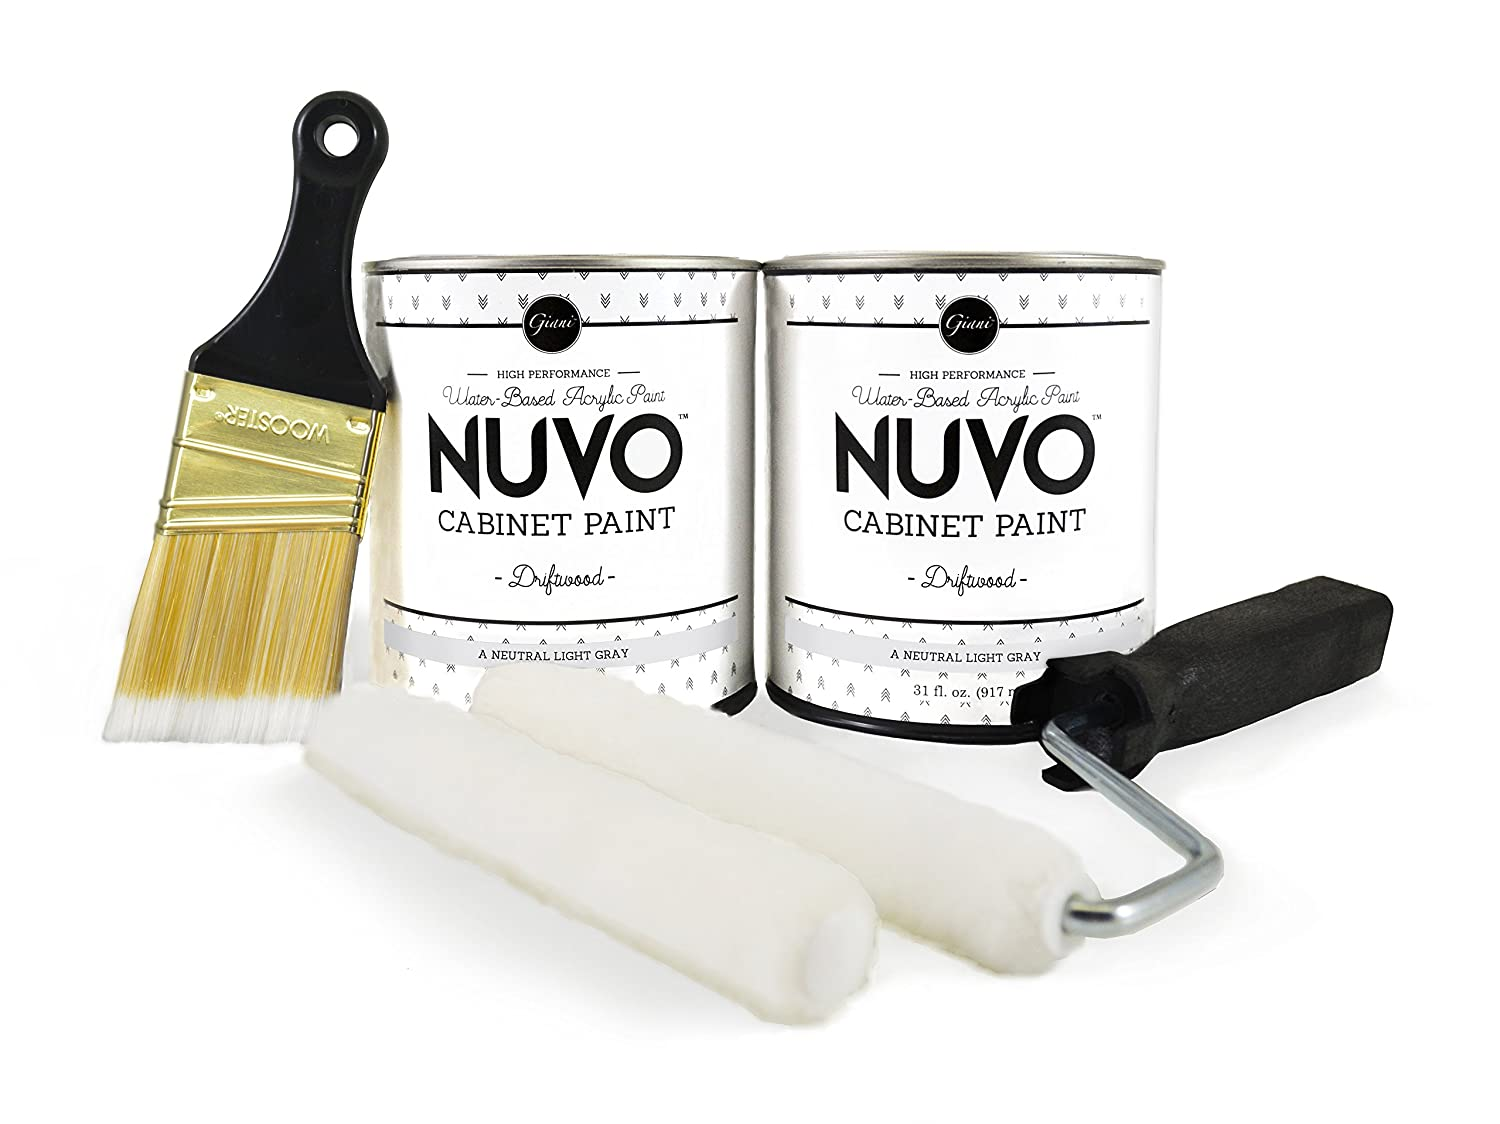 Giani Granite - Nuvo Cabinet Paint, Driftwood - - Amazon.com